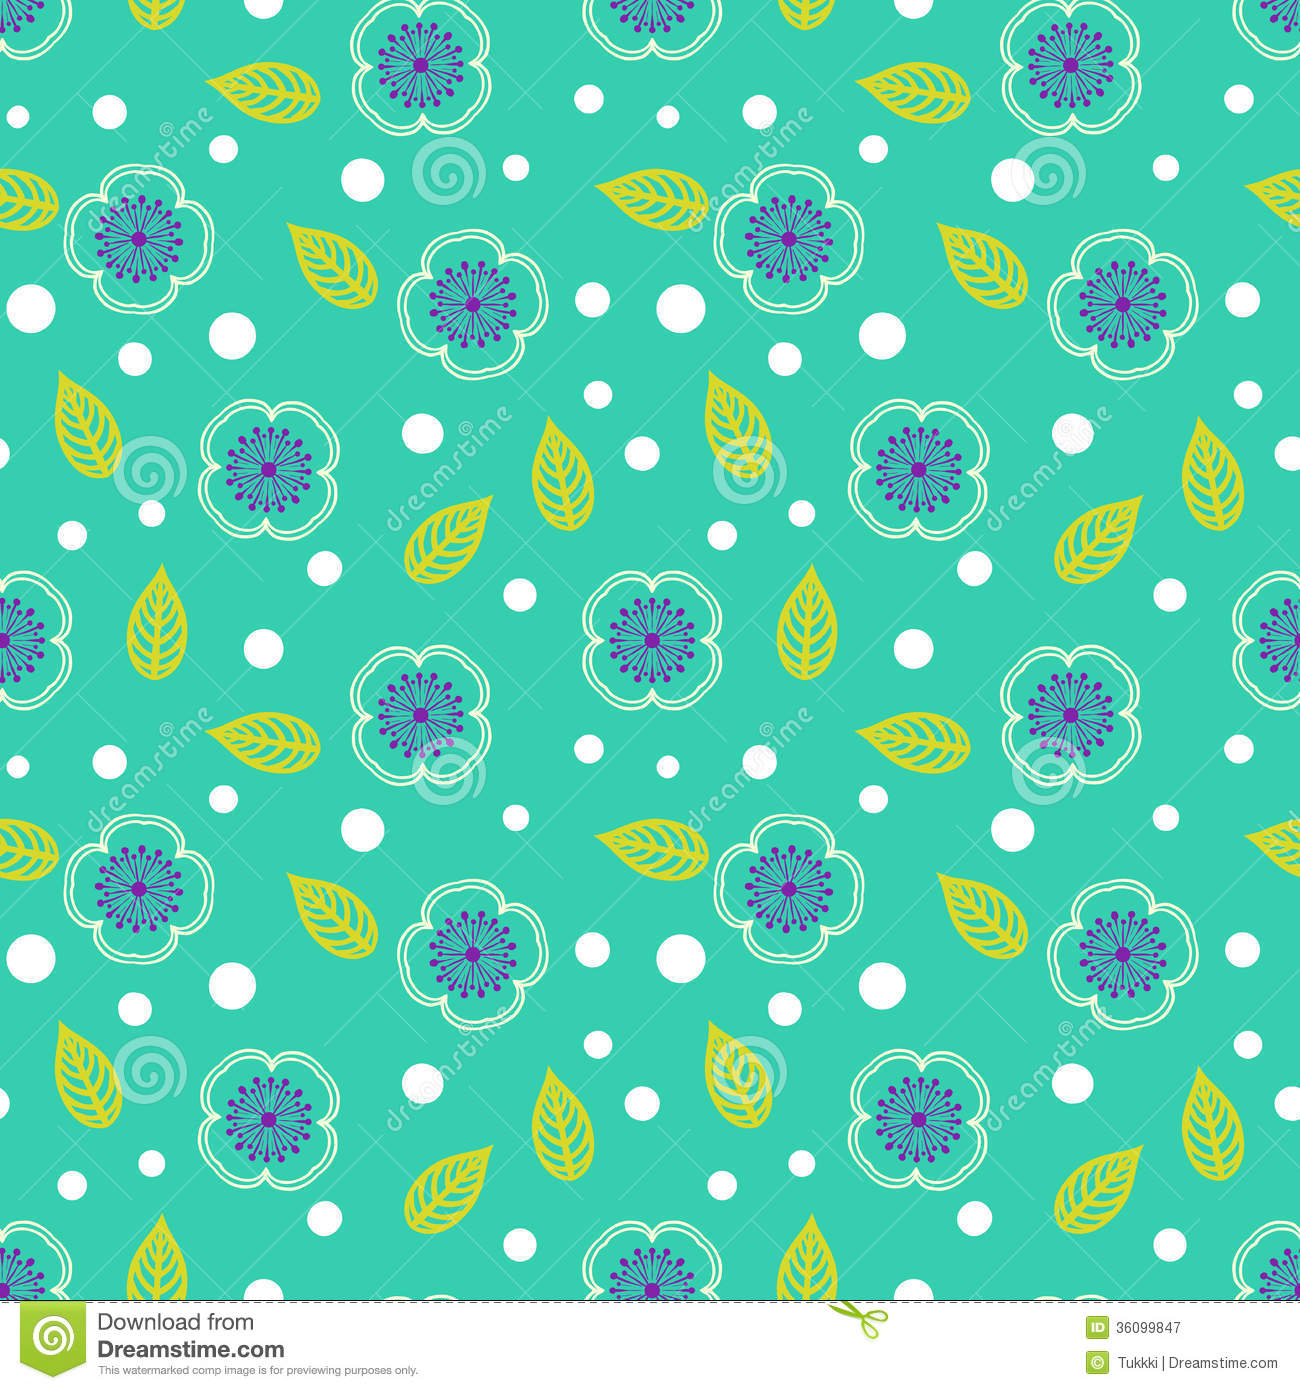 Ditsy Pattern With Small White Sakura Flowers Stock Vector